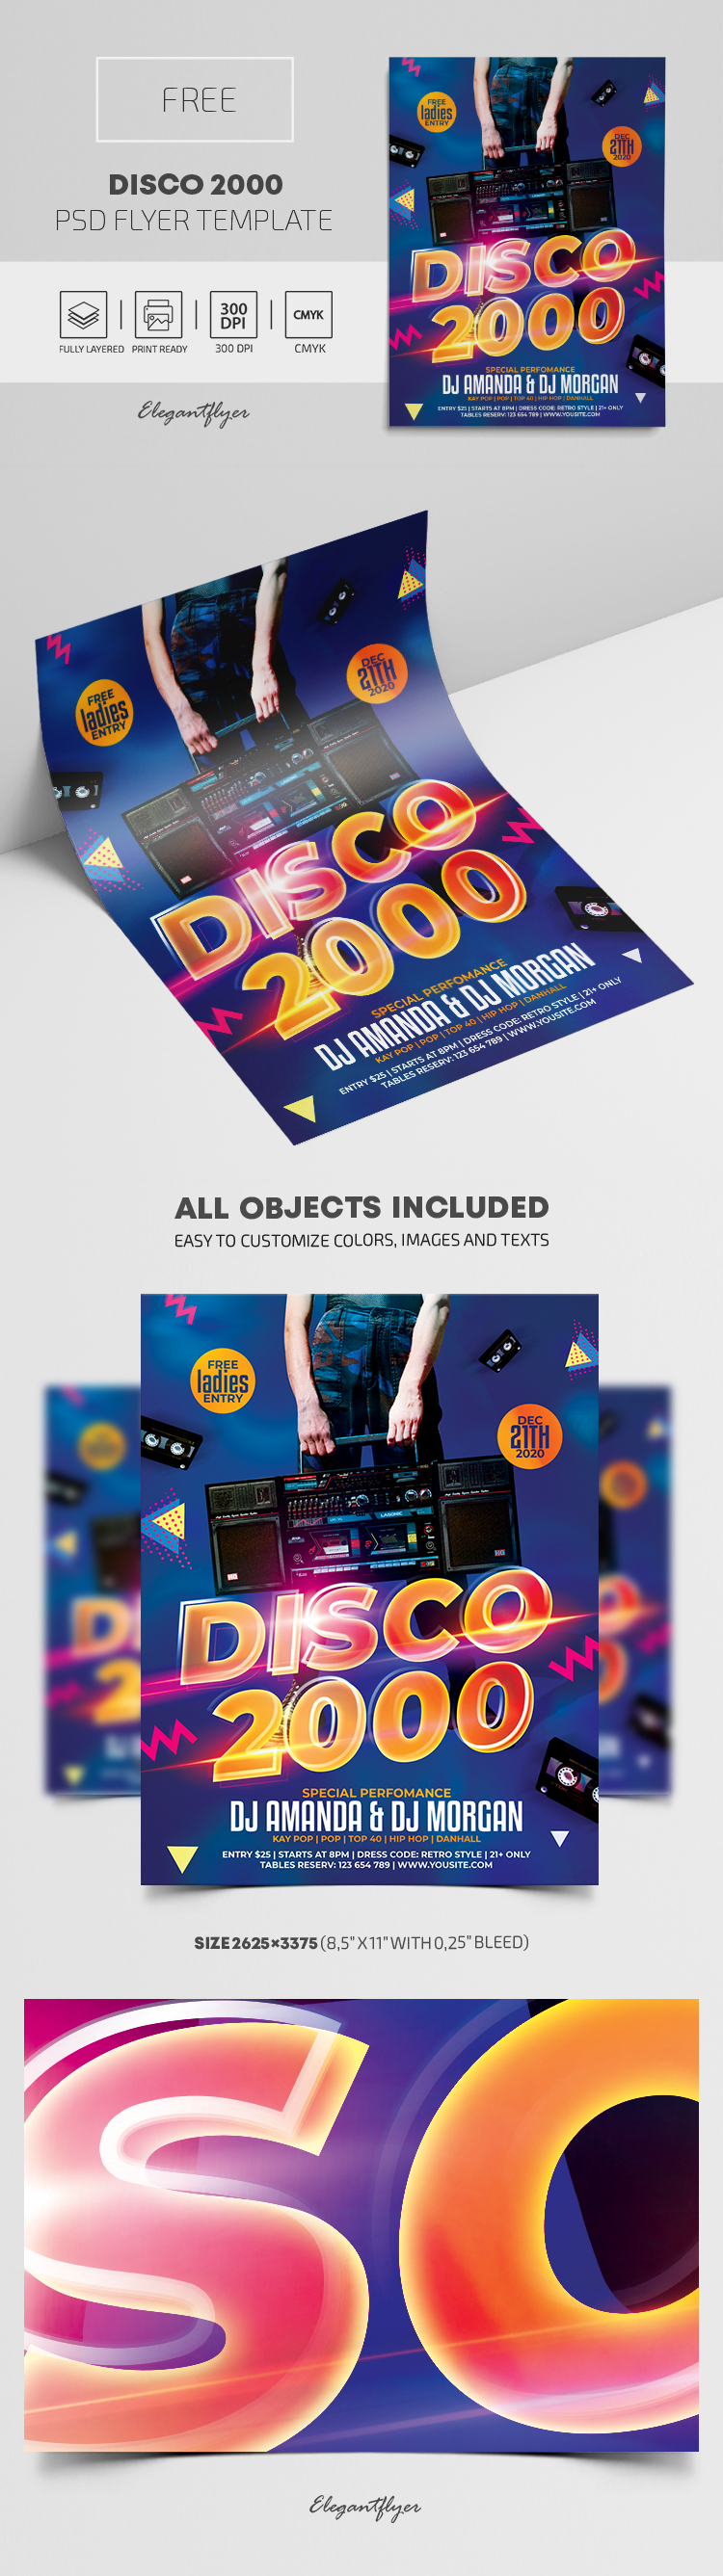 Disco 2000 – Free Flyer PSD Template